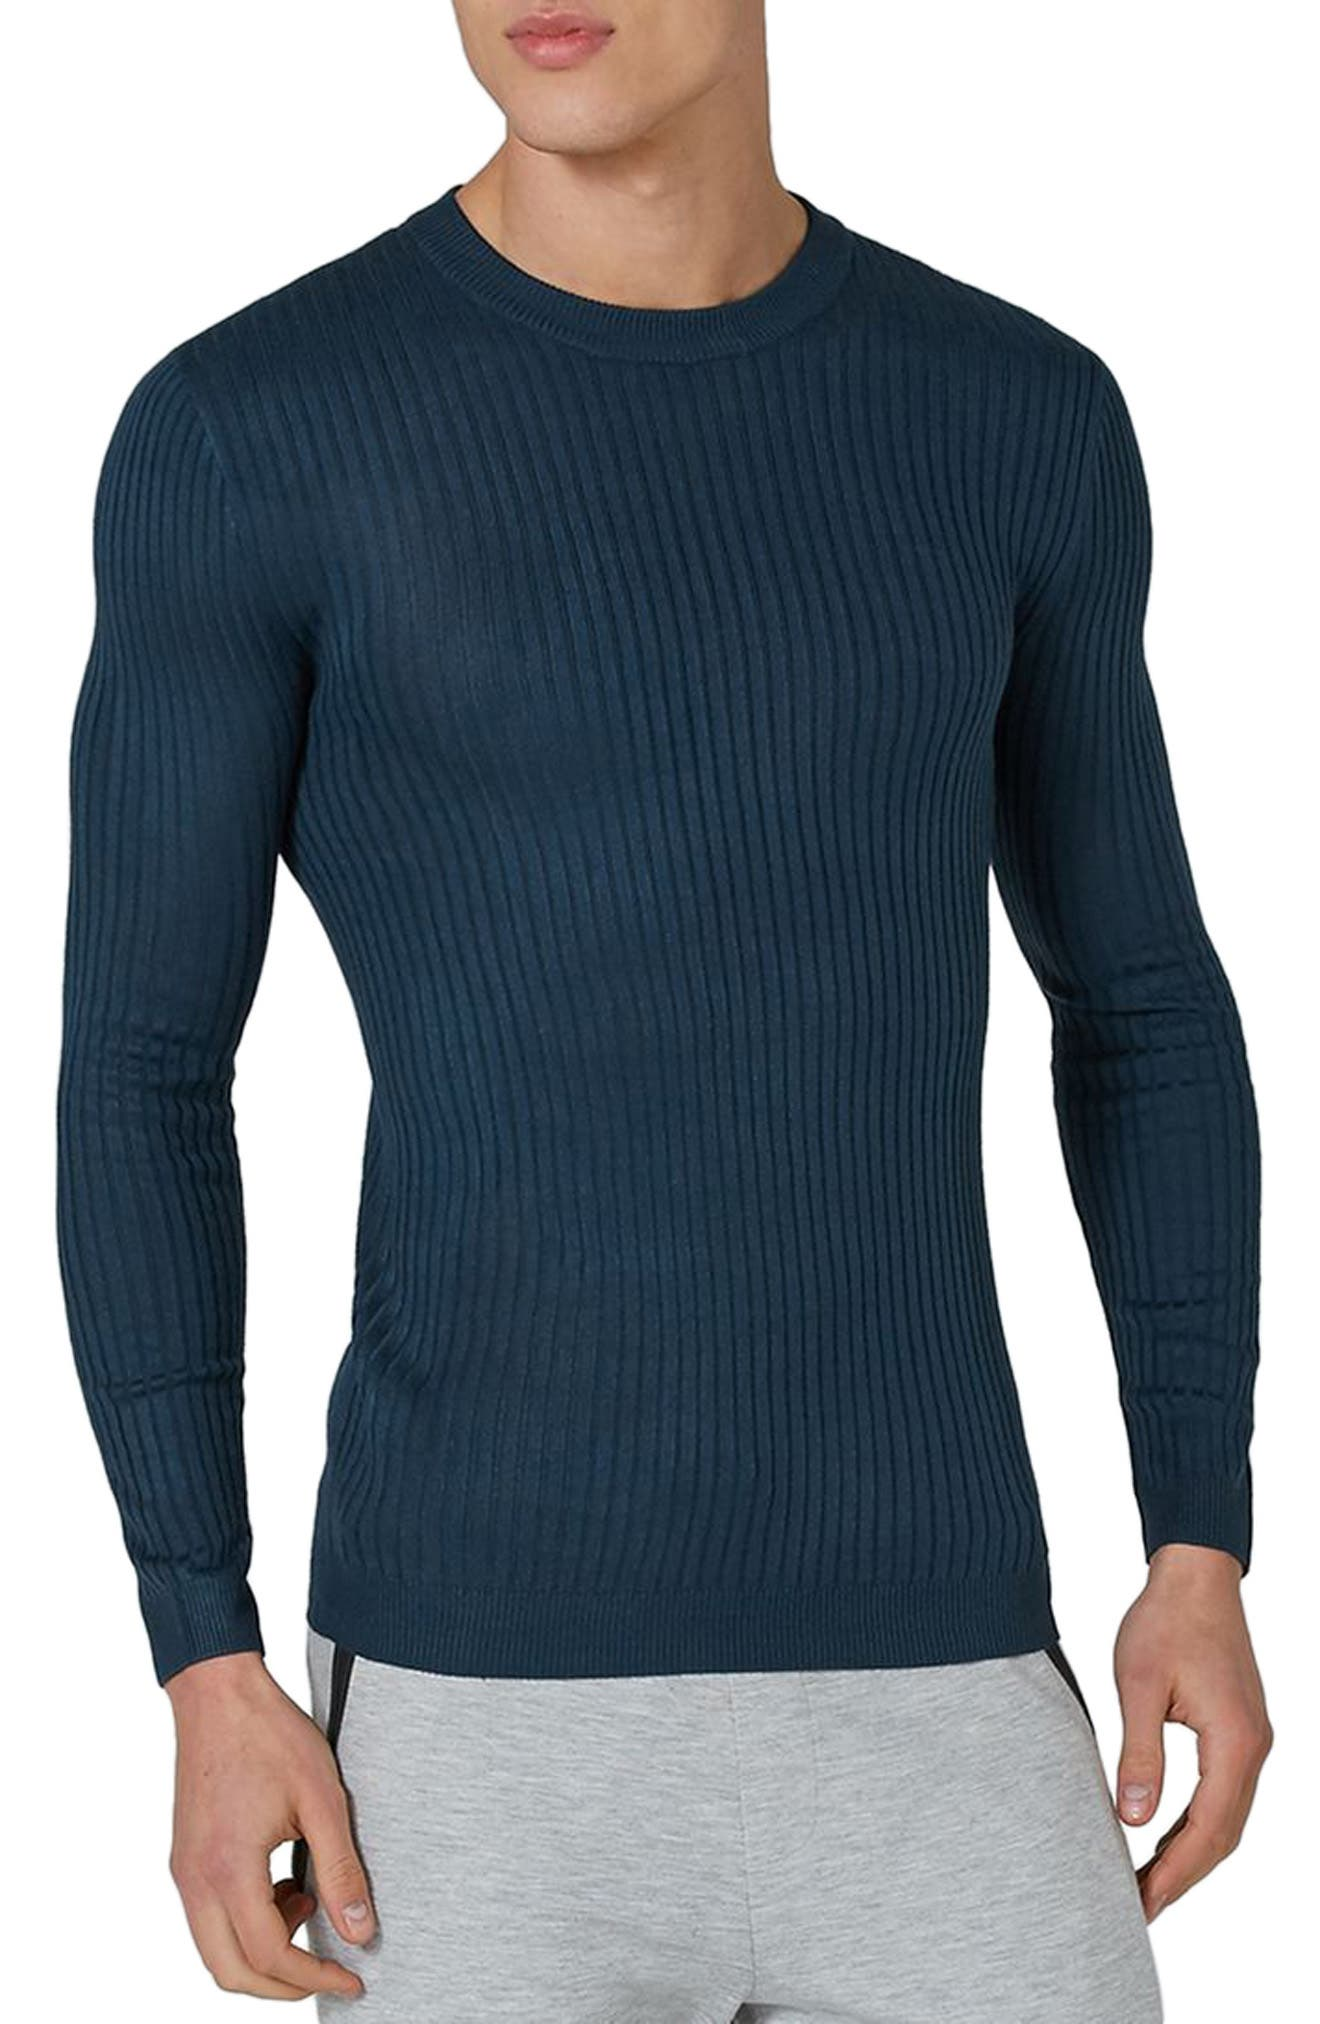 Topman Ribbed Muscle Fit Sweater